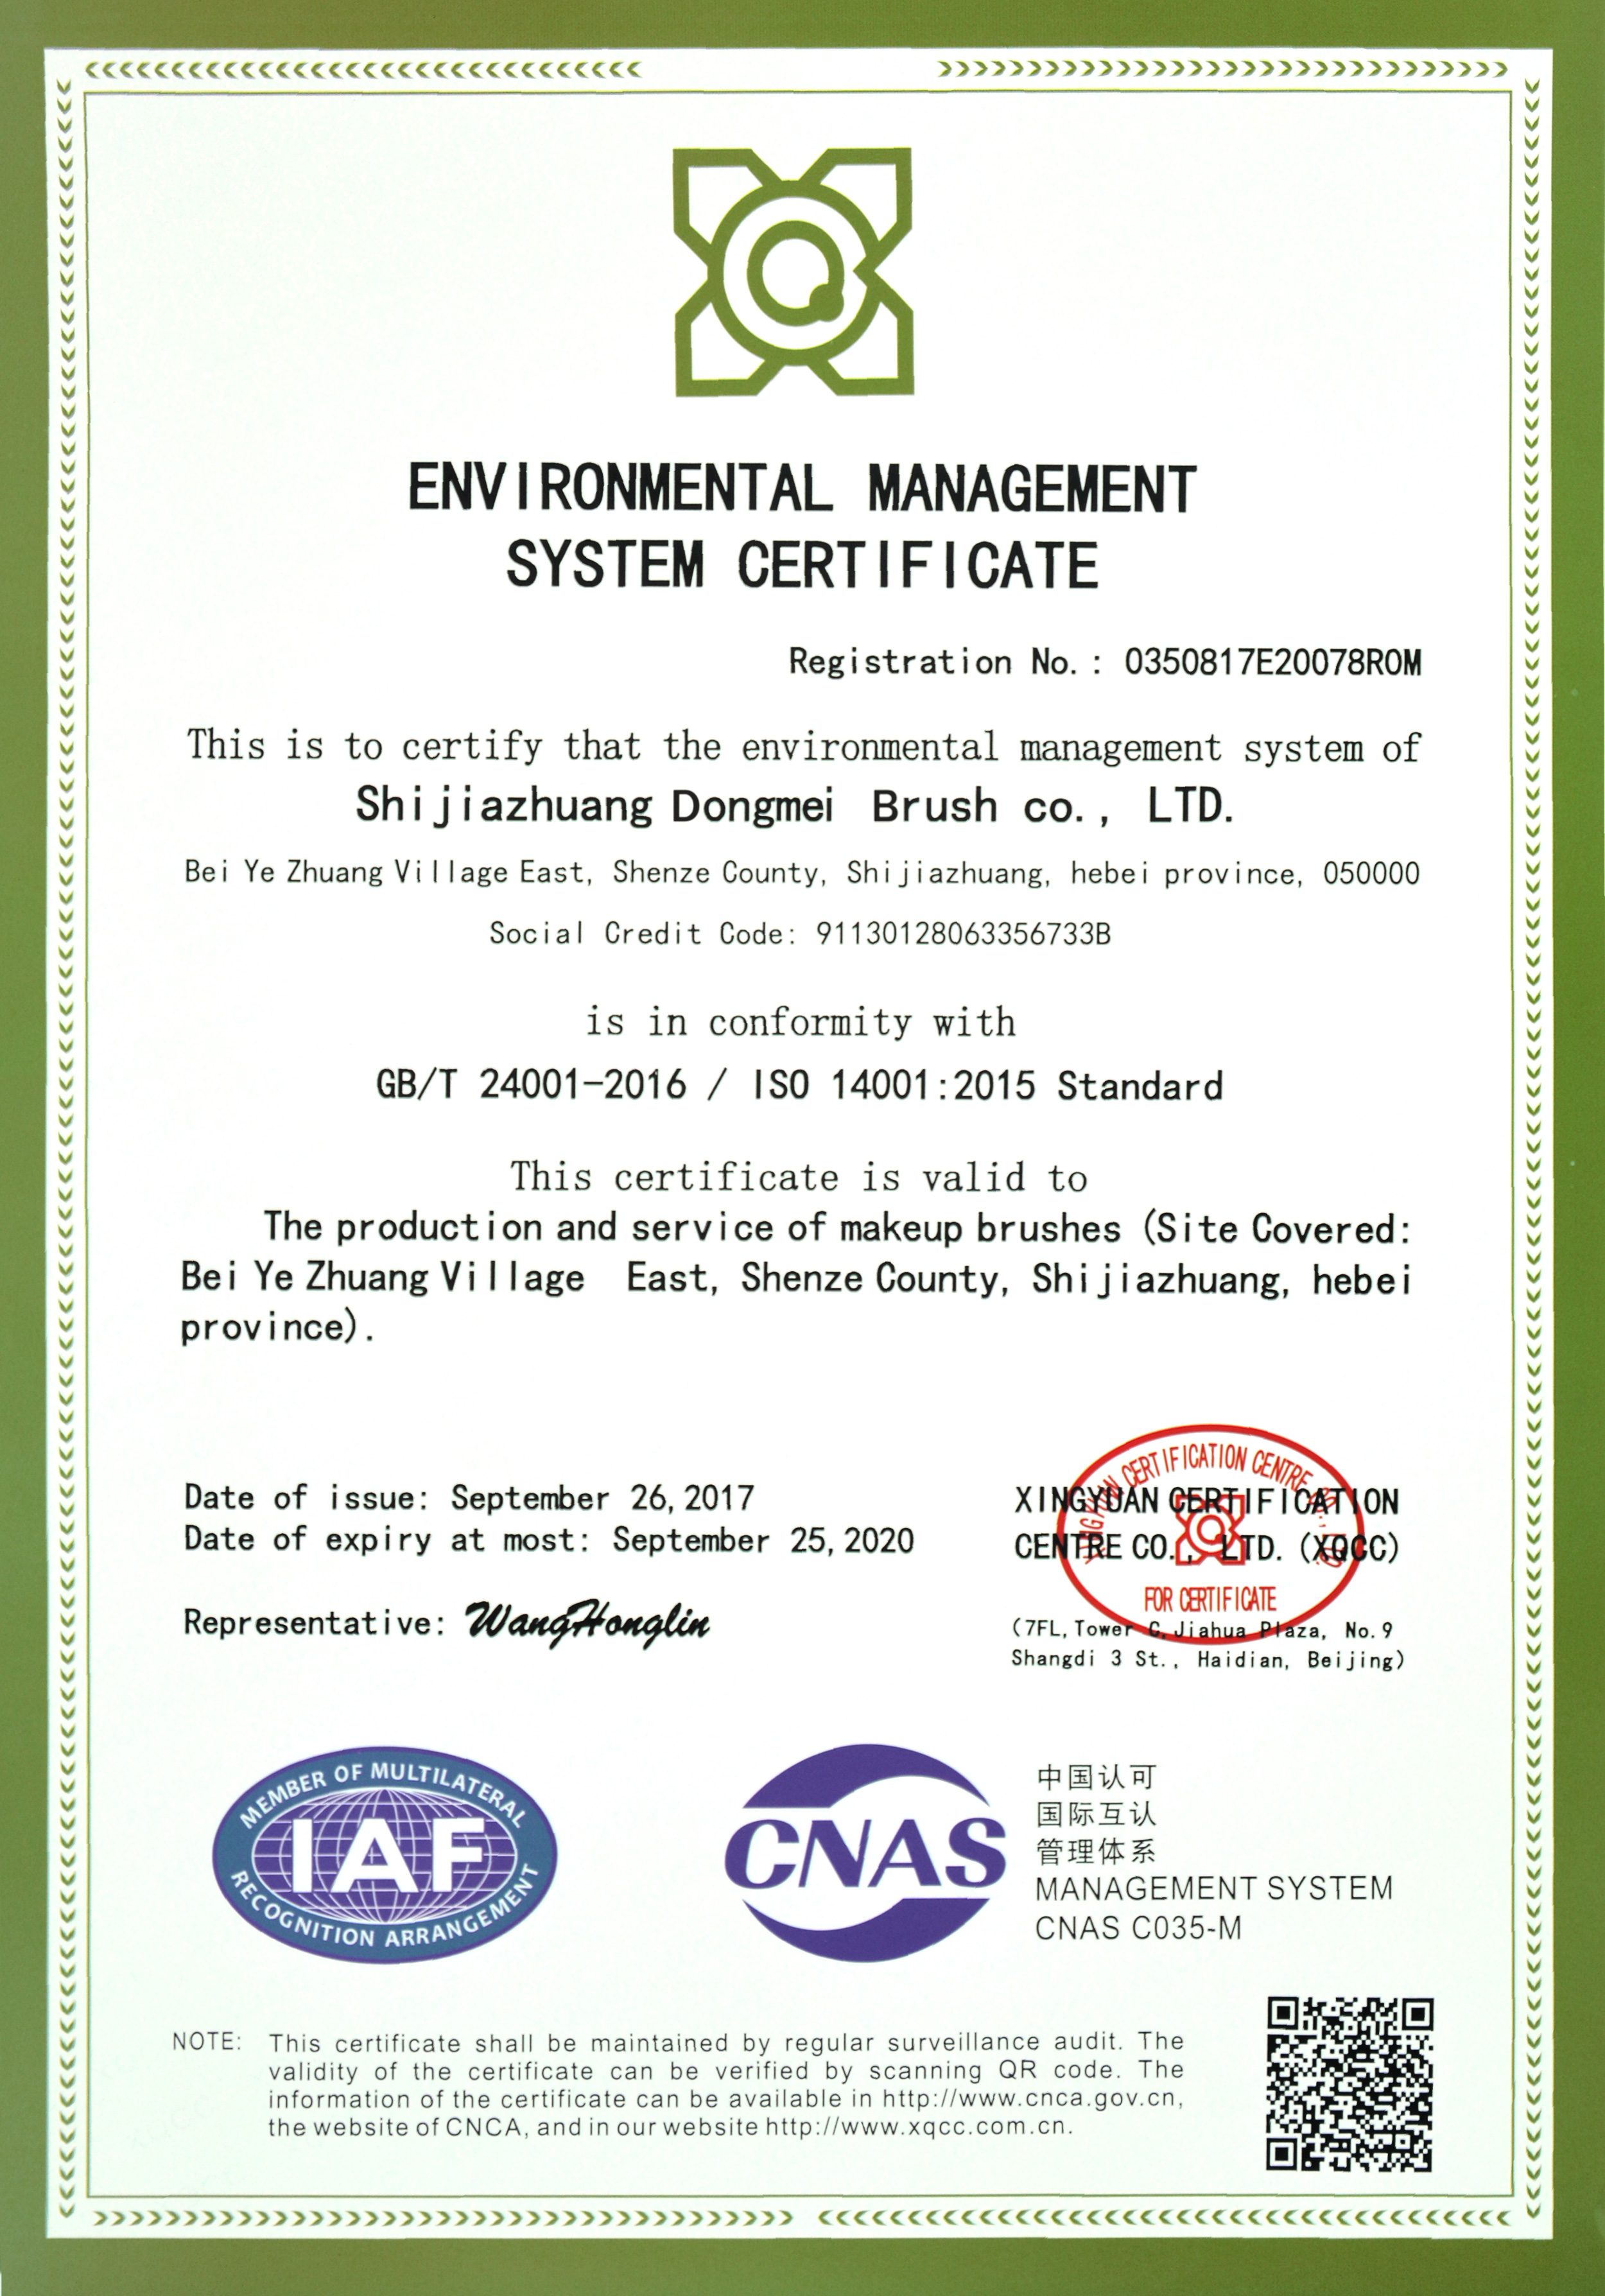 ISO14001--ENVIROMENTAL MANAGEMENT SYSTEM CERTIFICATE